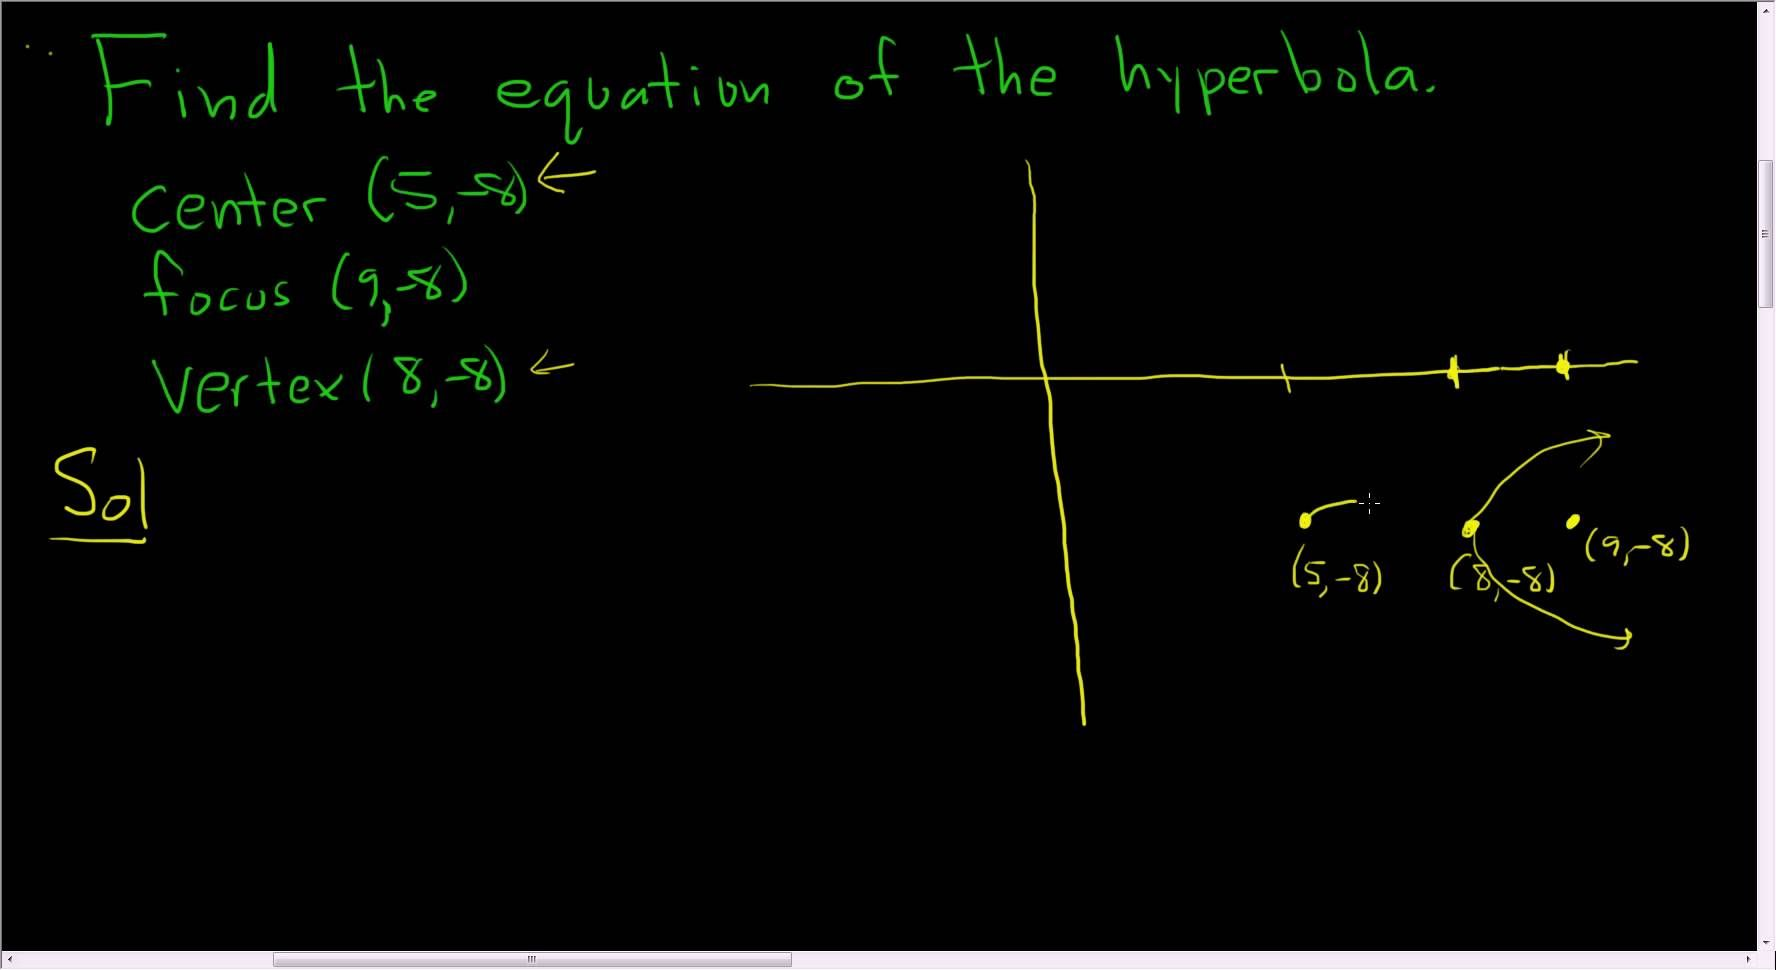 Finding The Equation Of The Hyperbola Given The Center